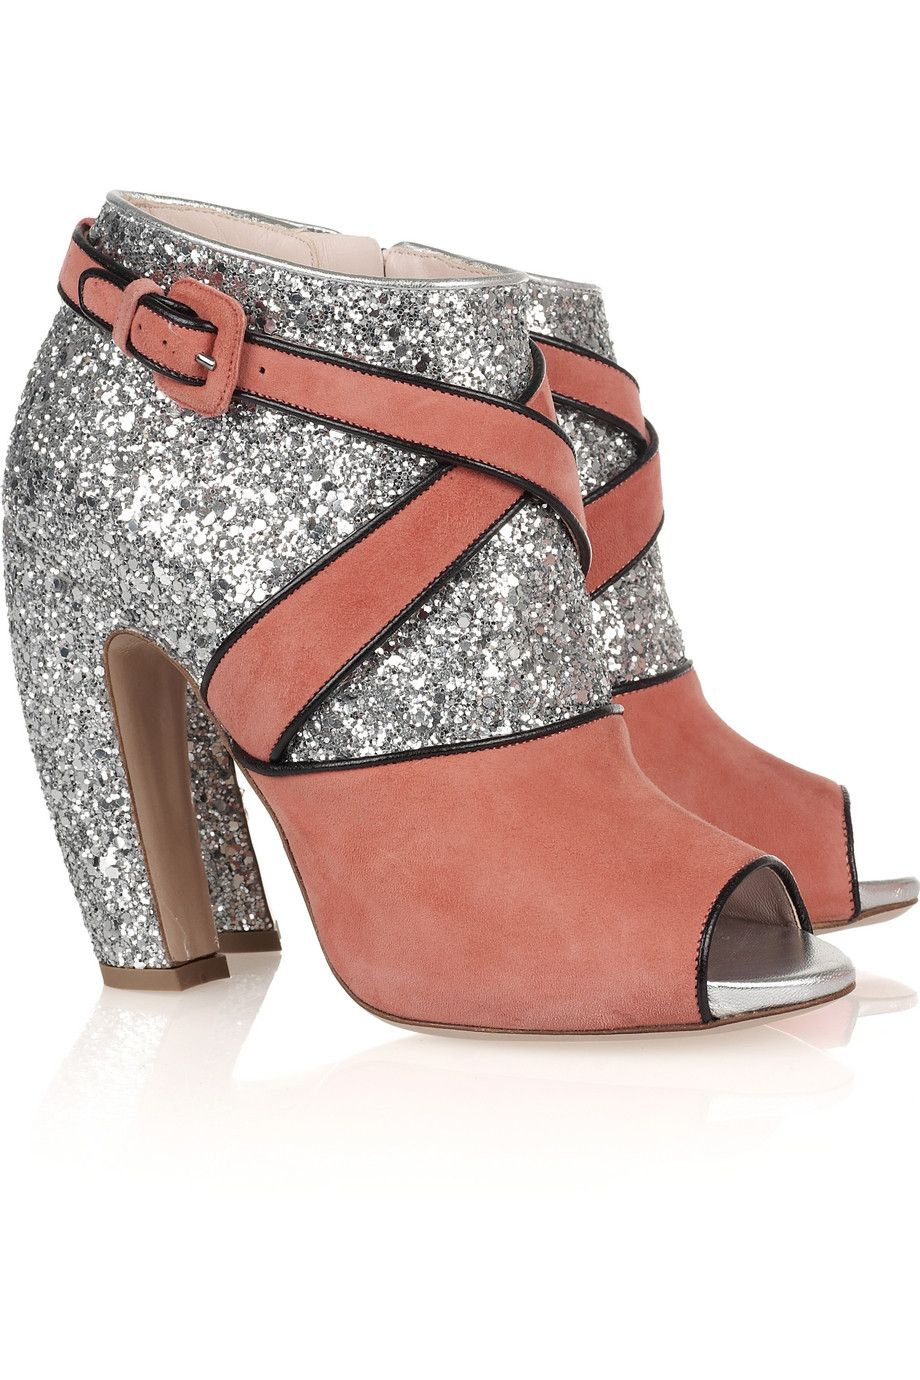 25f27616faaa Miu Miu. Alternate-universe-me is rocking the eff out of these ...